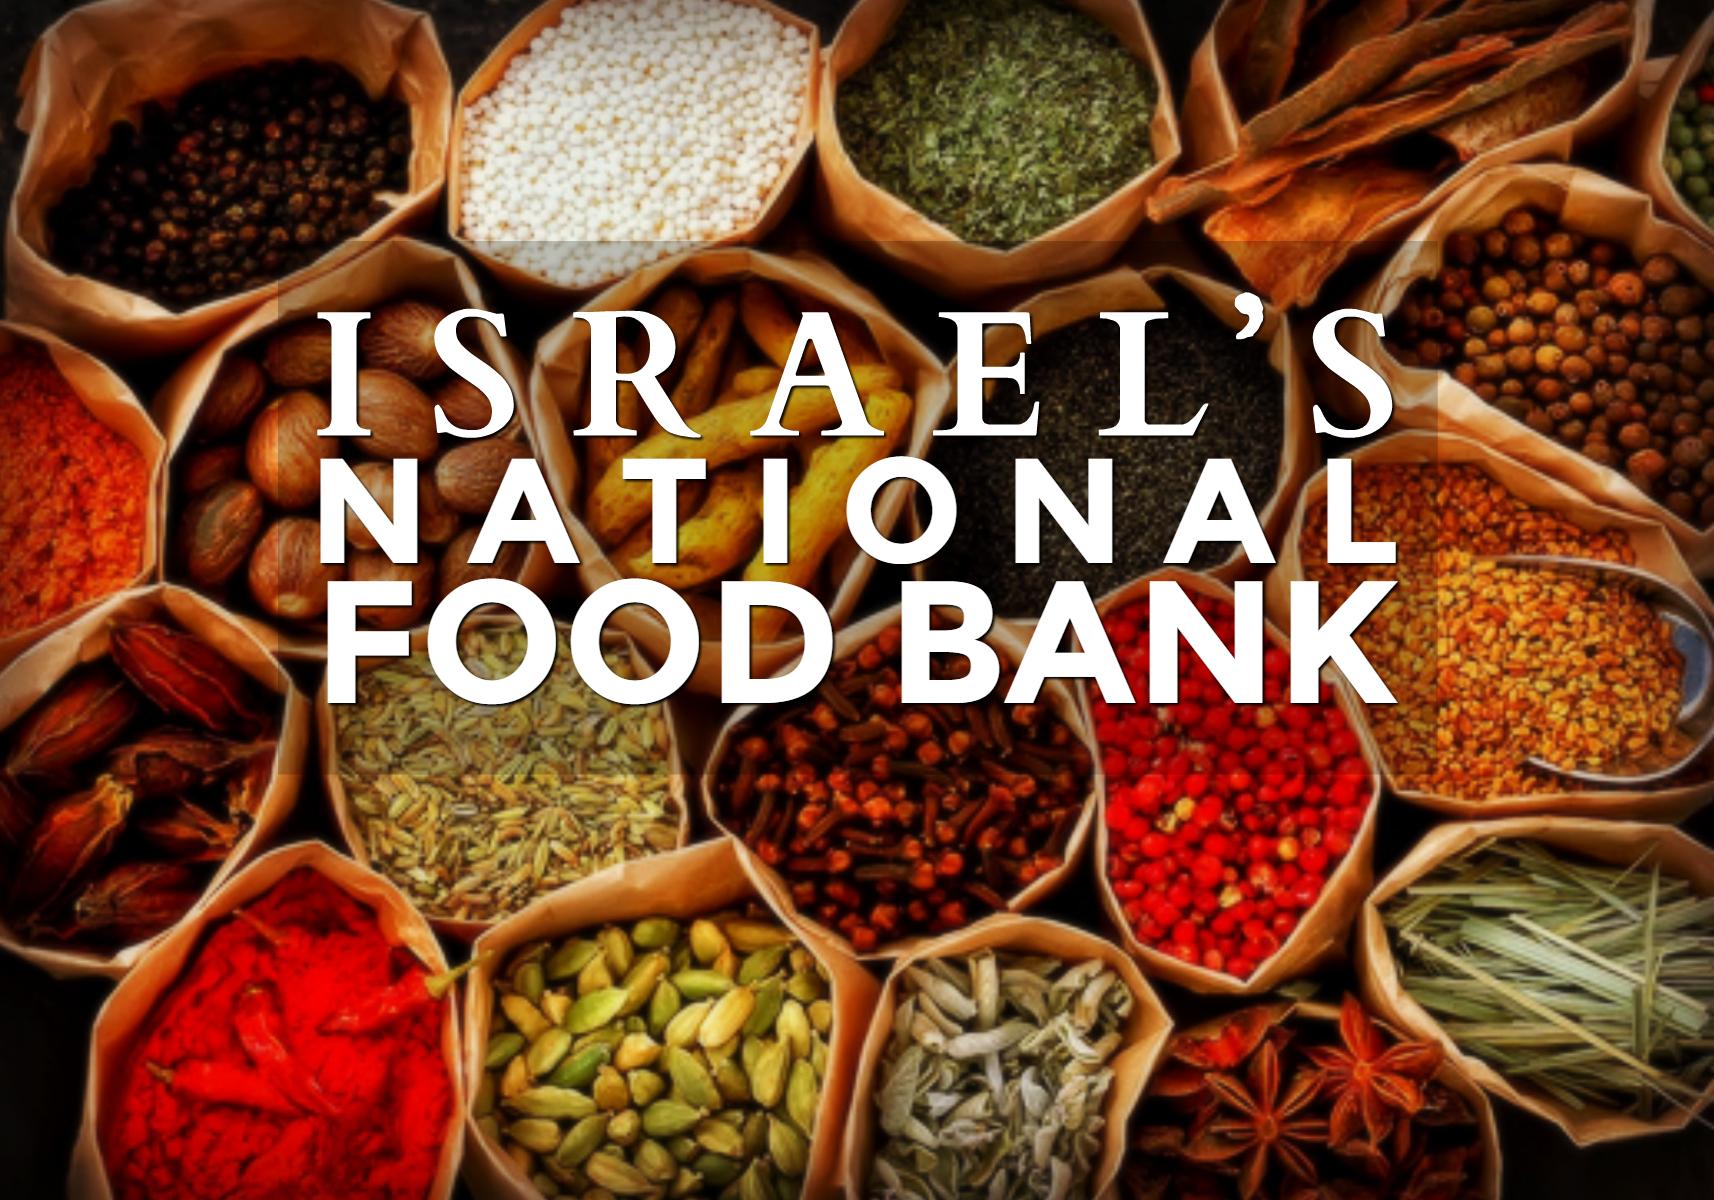 LEKET ISRAEL FOOD BANK